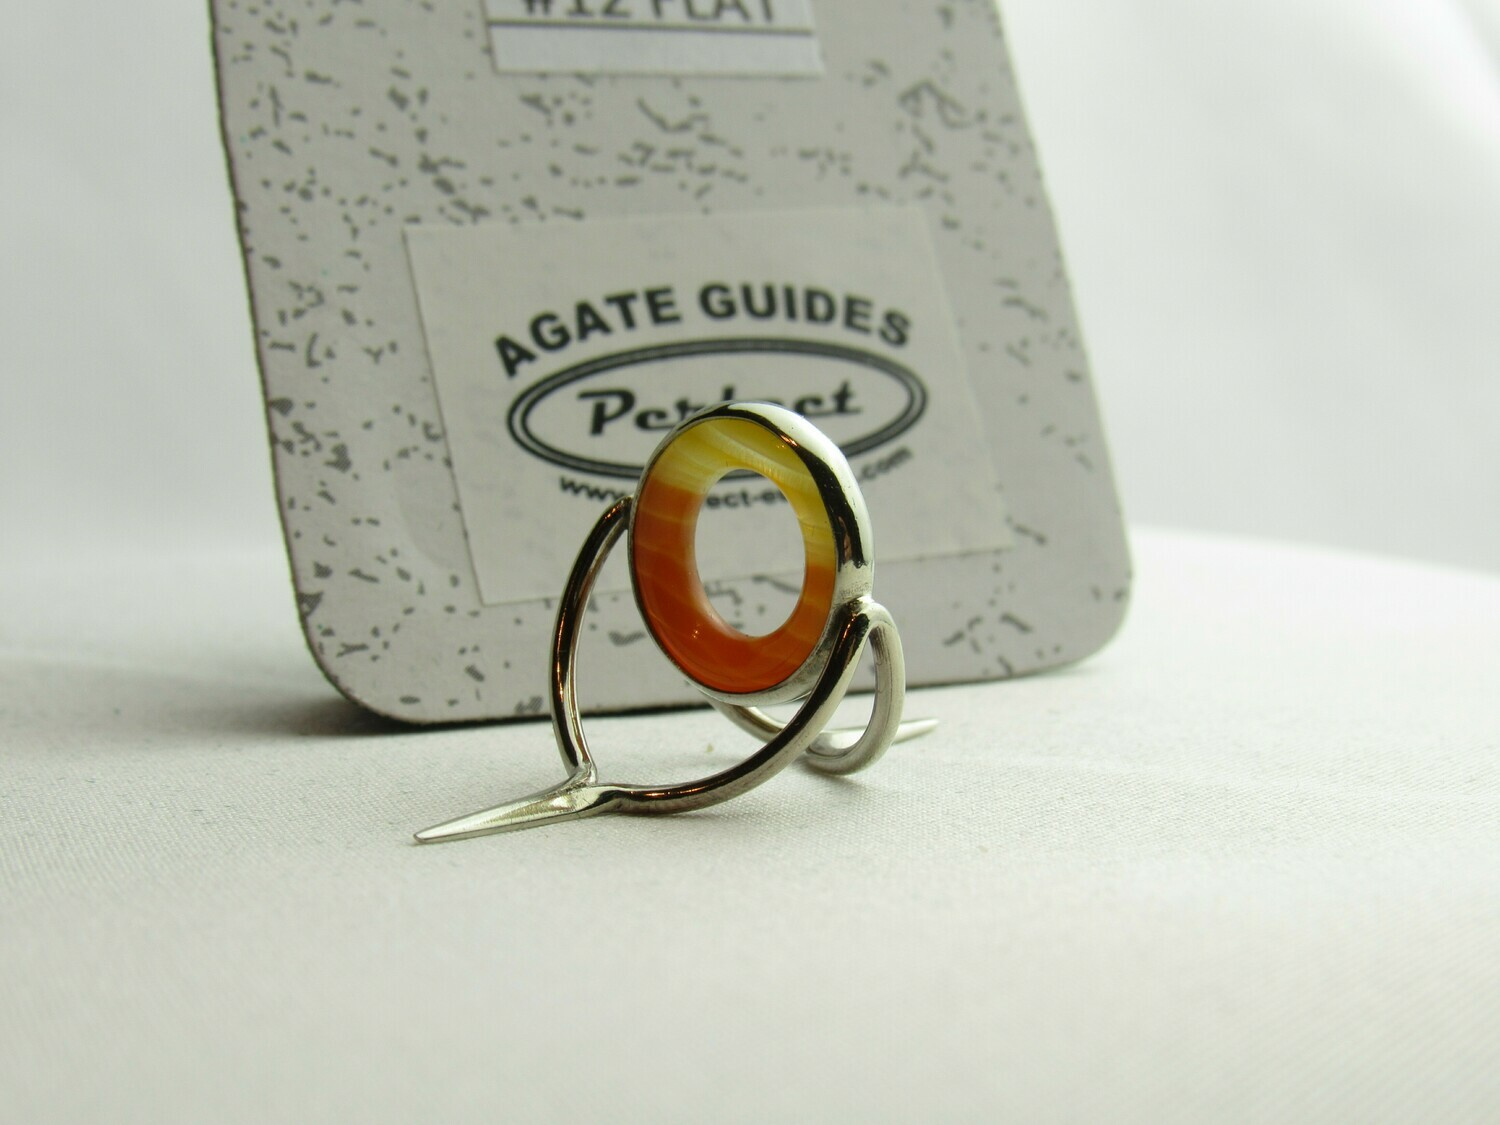 Agate Perfect Stripping Guide Ring 12mm orange white Sunrise